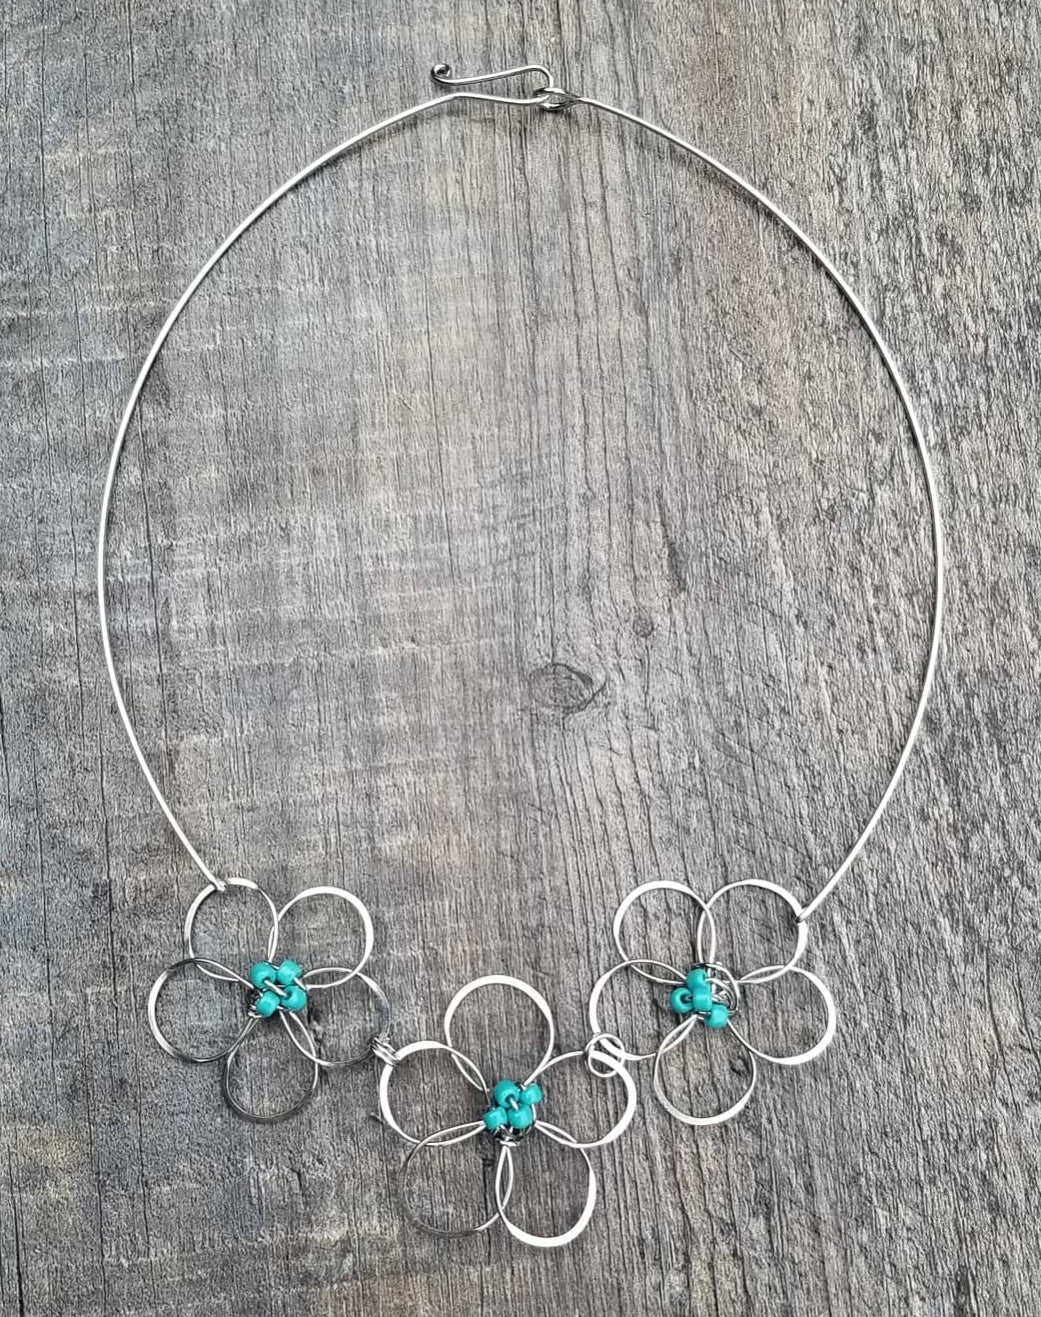 Flower Necklace Turquoise